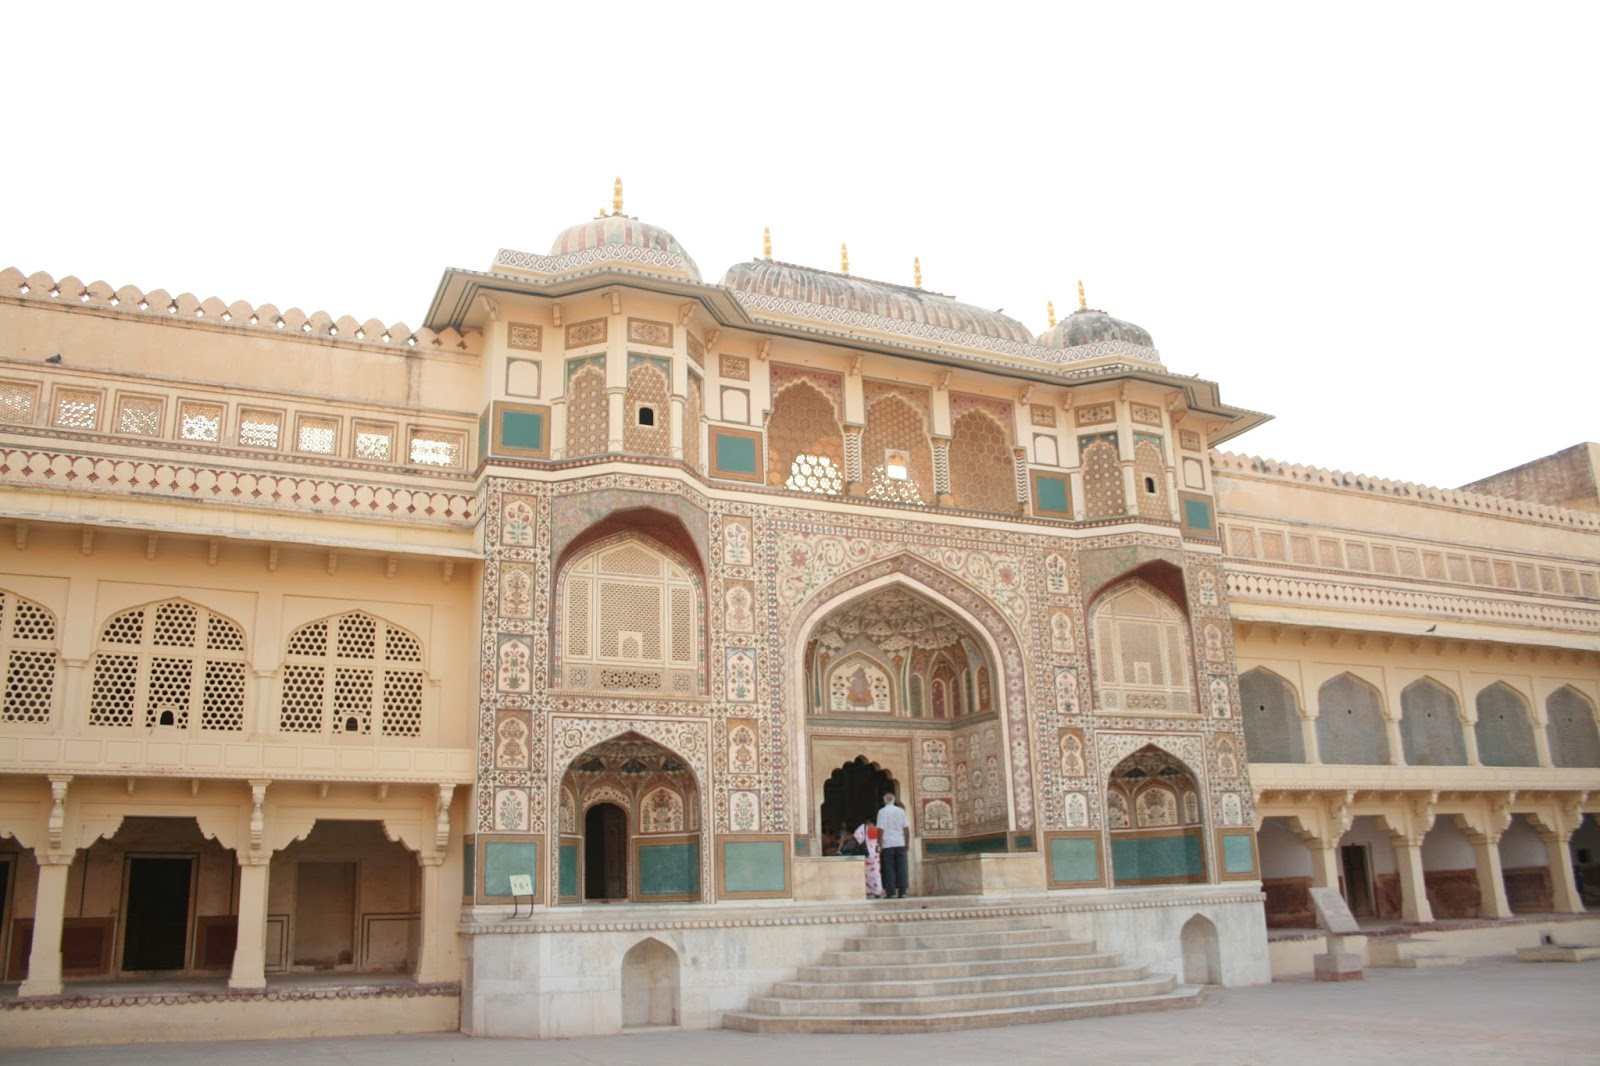 The Amer Fort Also Known As Amber Fort Located In Jaipur